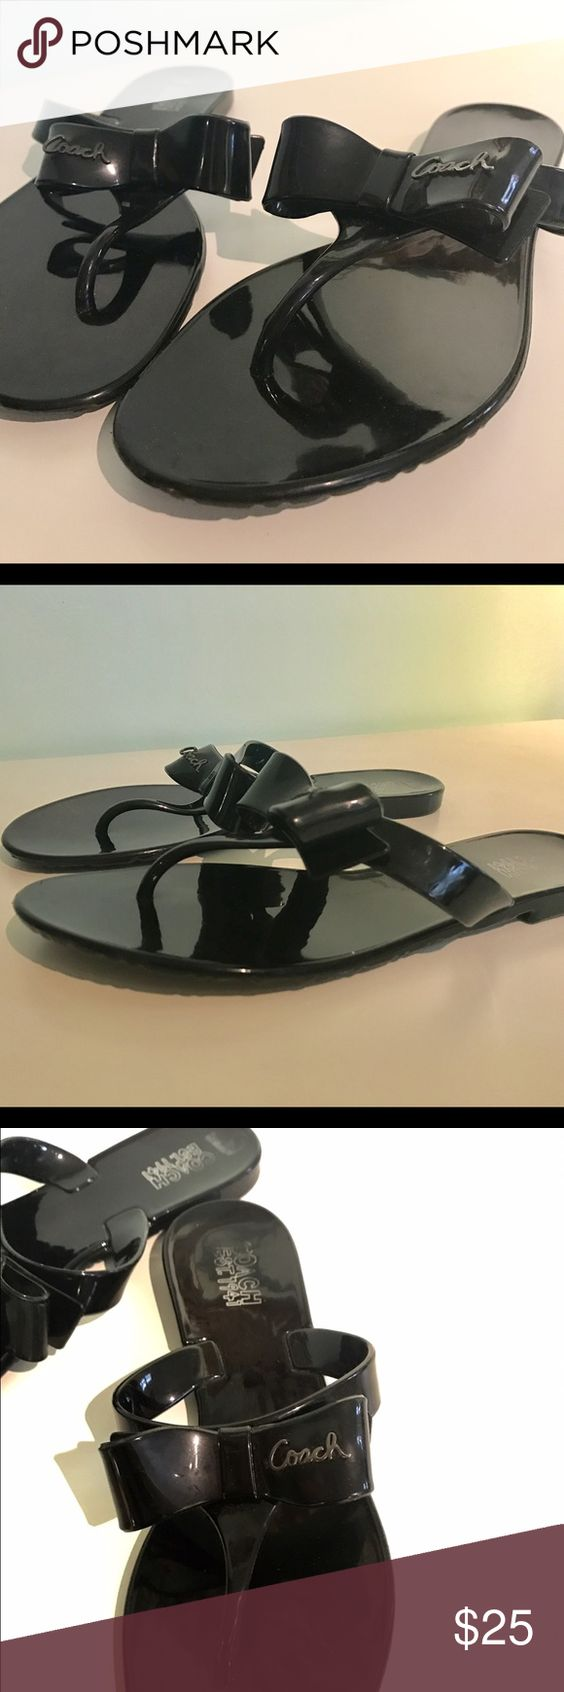 Black jelly sandals with bow - Coach Black Jelly Sandal Coach Black Patent Leather Jelly Sandals With Bow Coach Icon Name